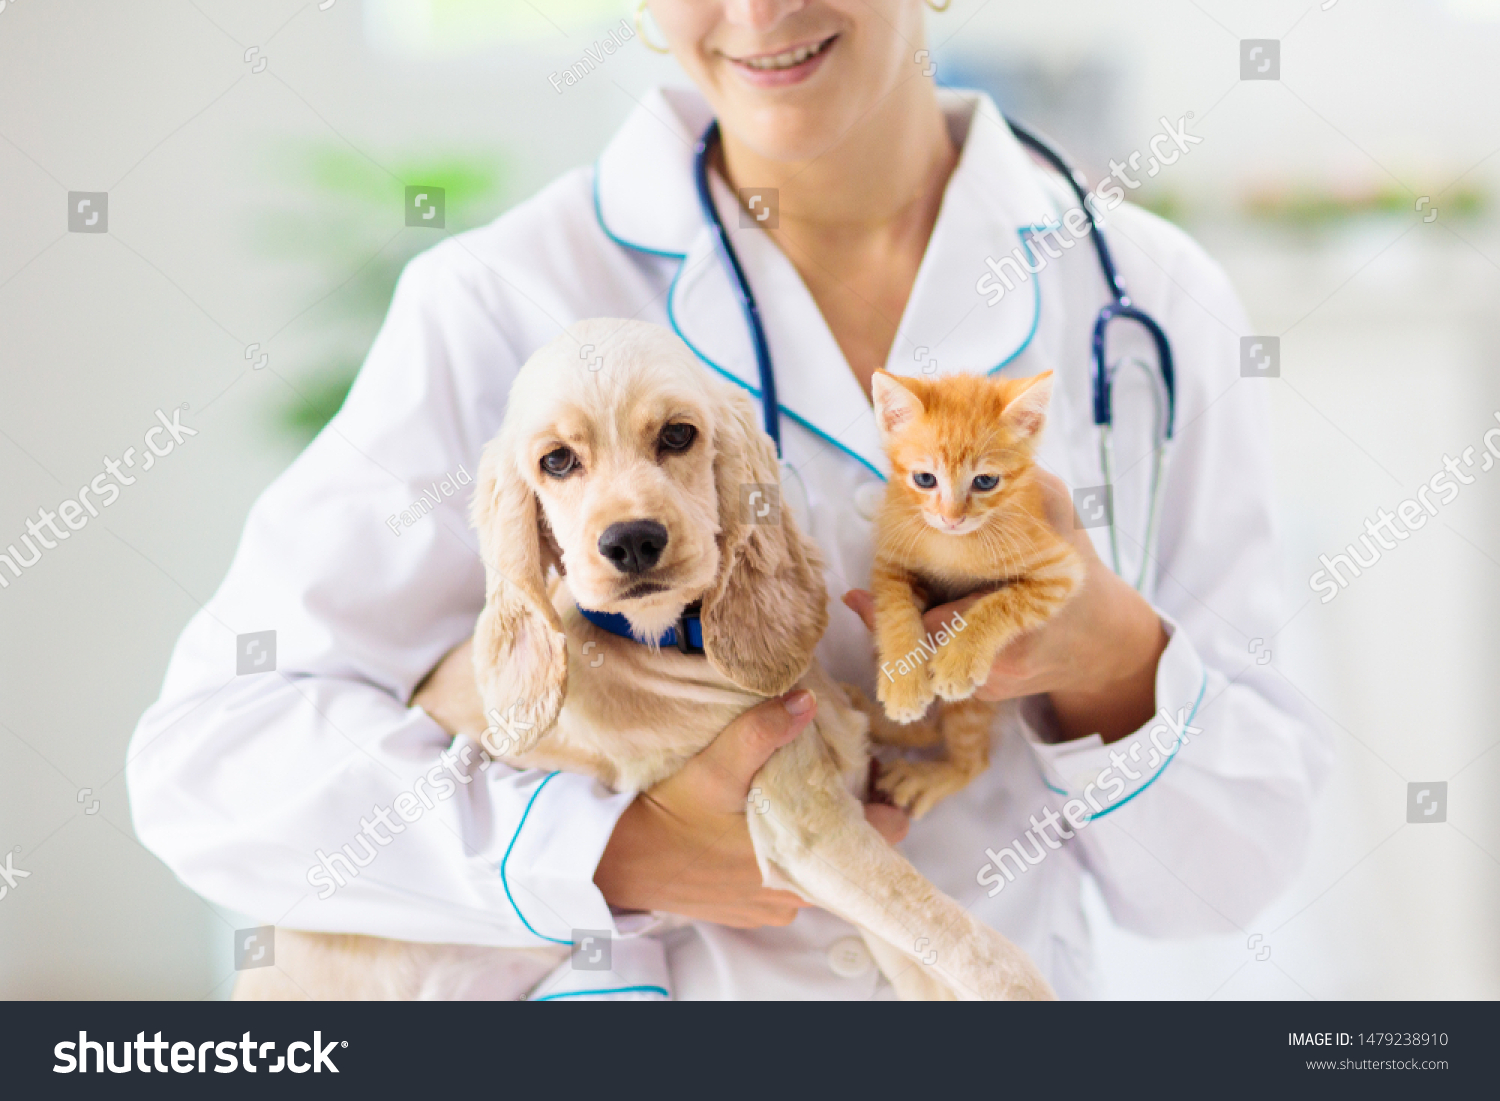 Vet examining dog and cat. Puppy and kitten at veterinarian doctor. Animal clinic. Pet check up and vaccination. Health care. #1479238910